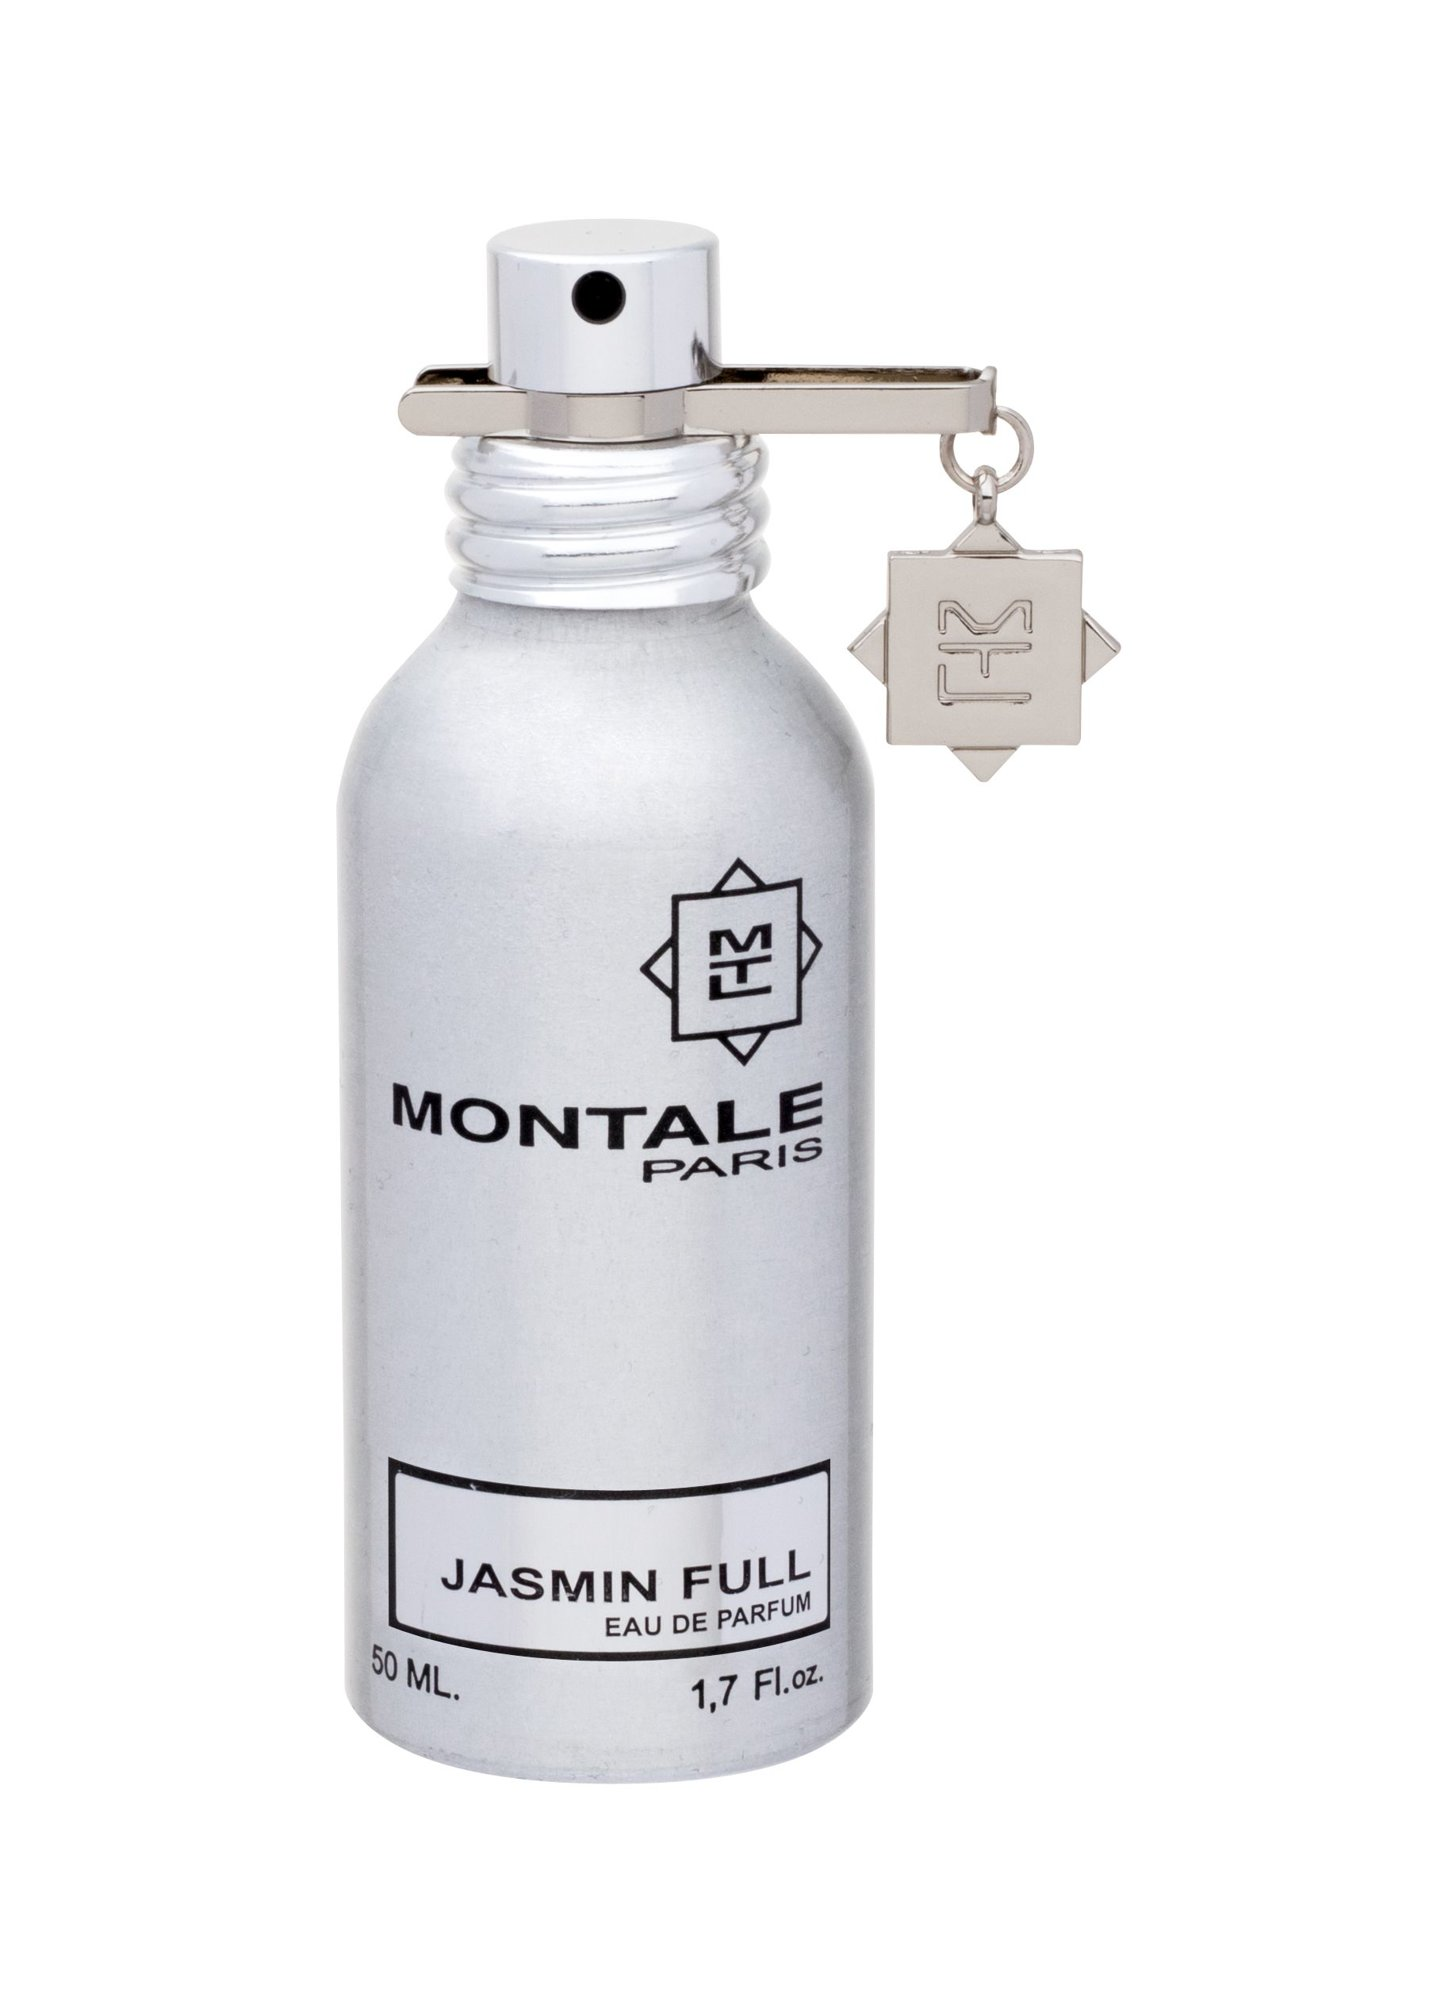 Montale Paris Jasmin Full EDP 50ml